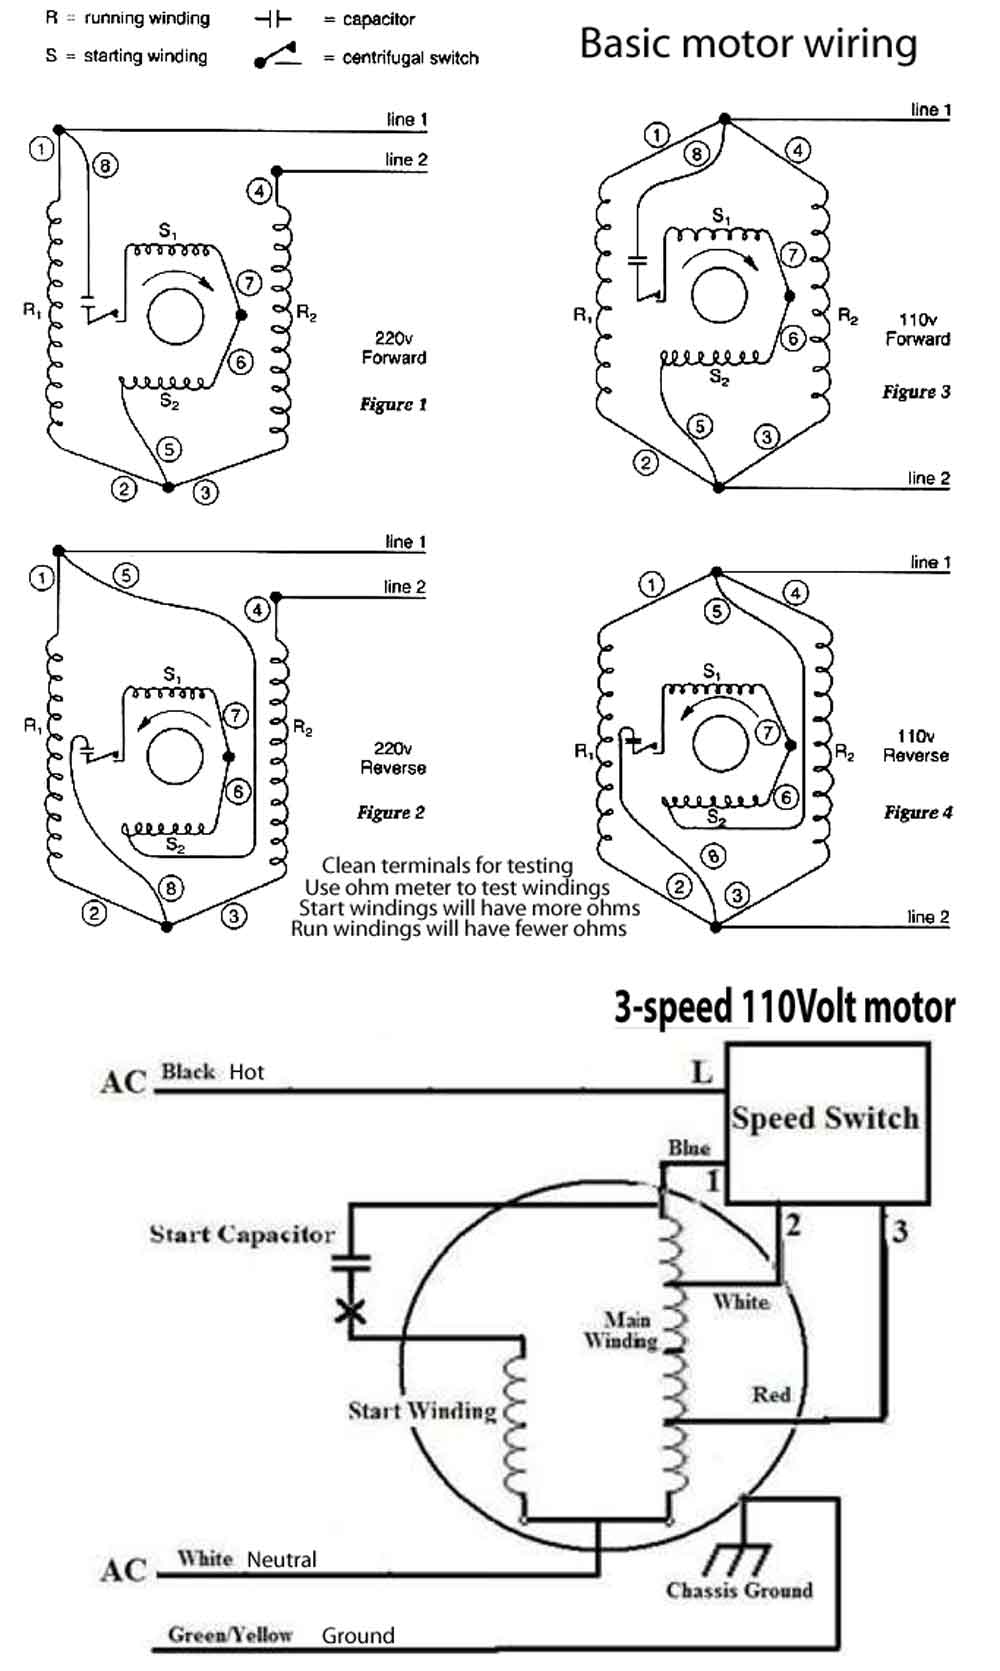 how to check motor winding with multimeter